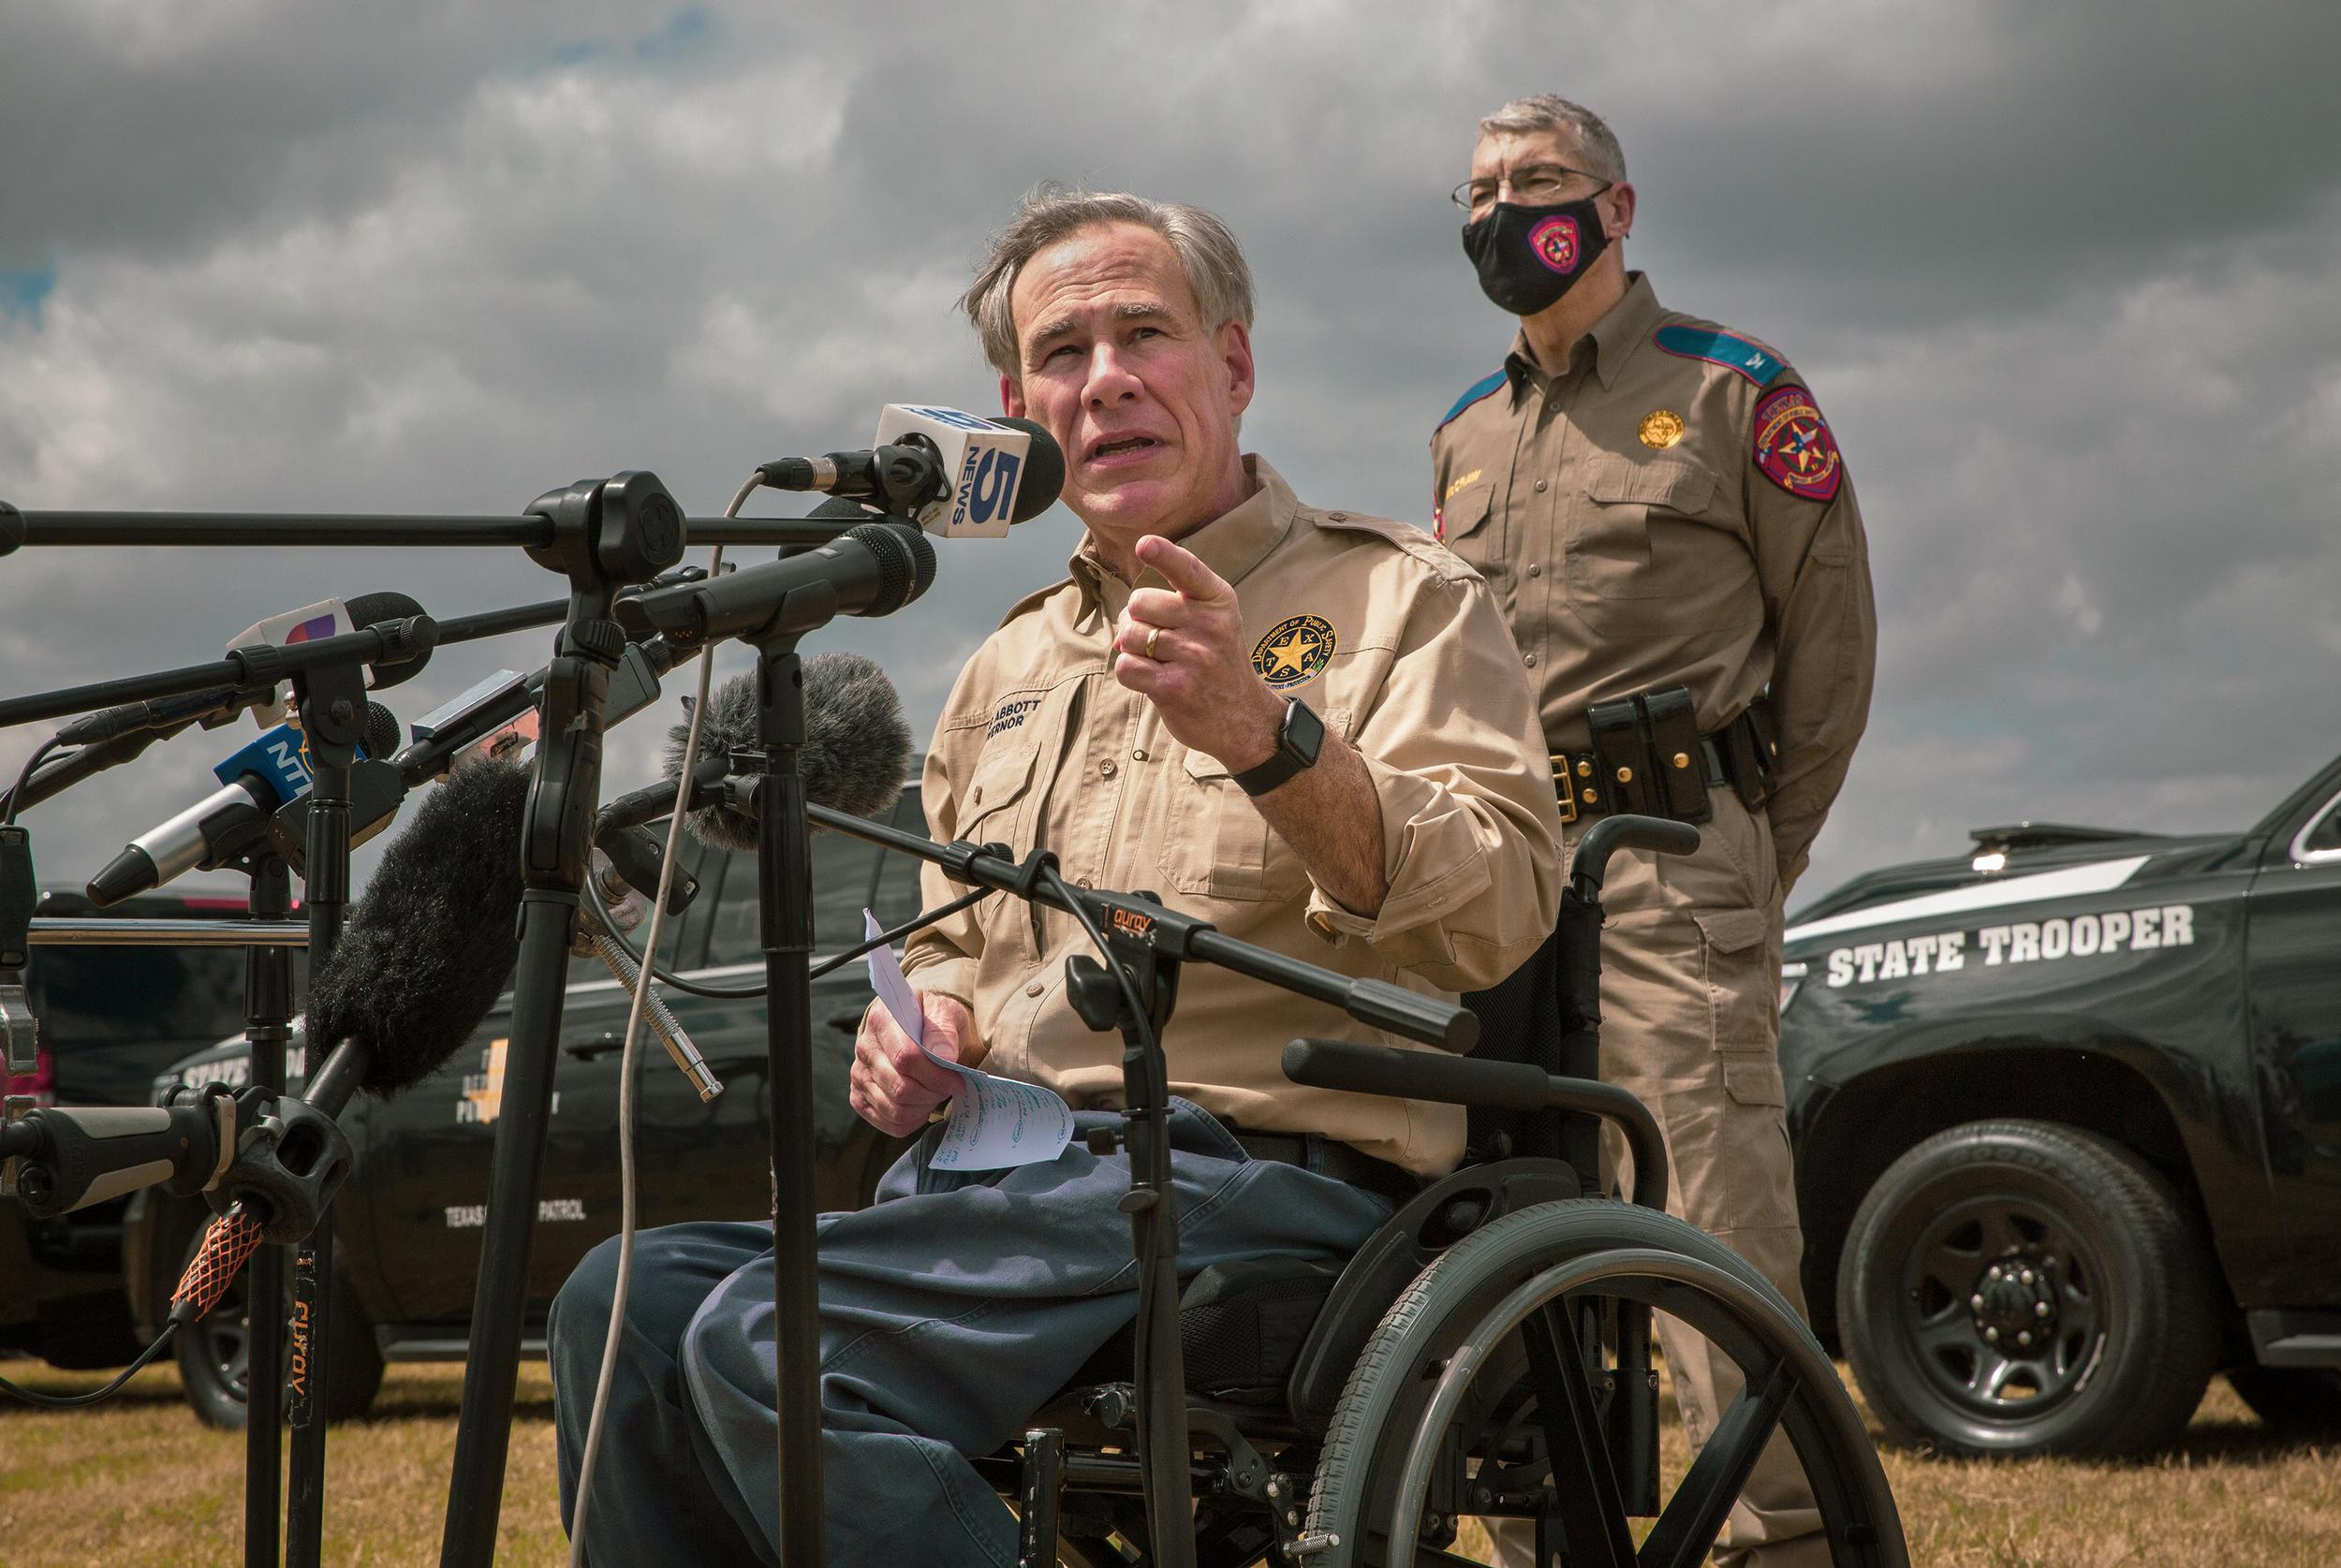 In a period of conflicts and crises, Gov. Greg Abbott goes all in on the border